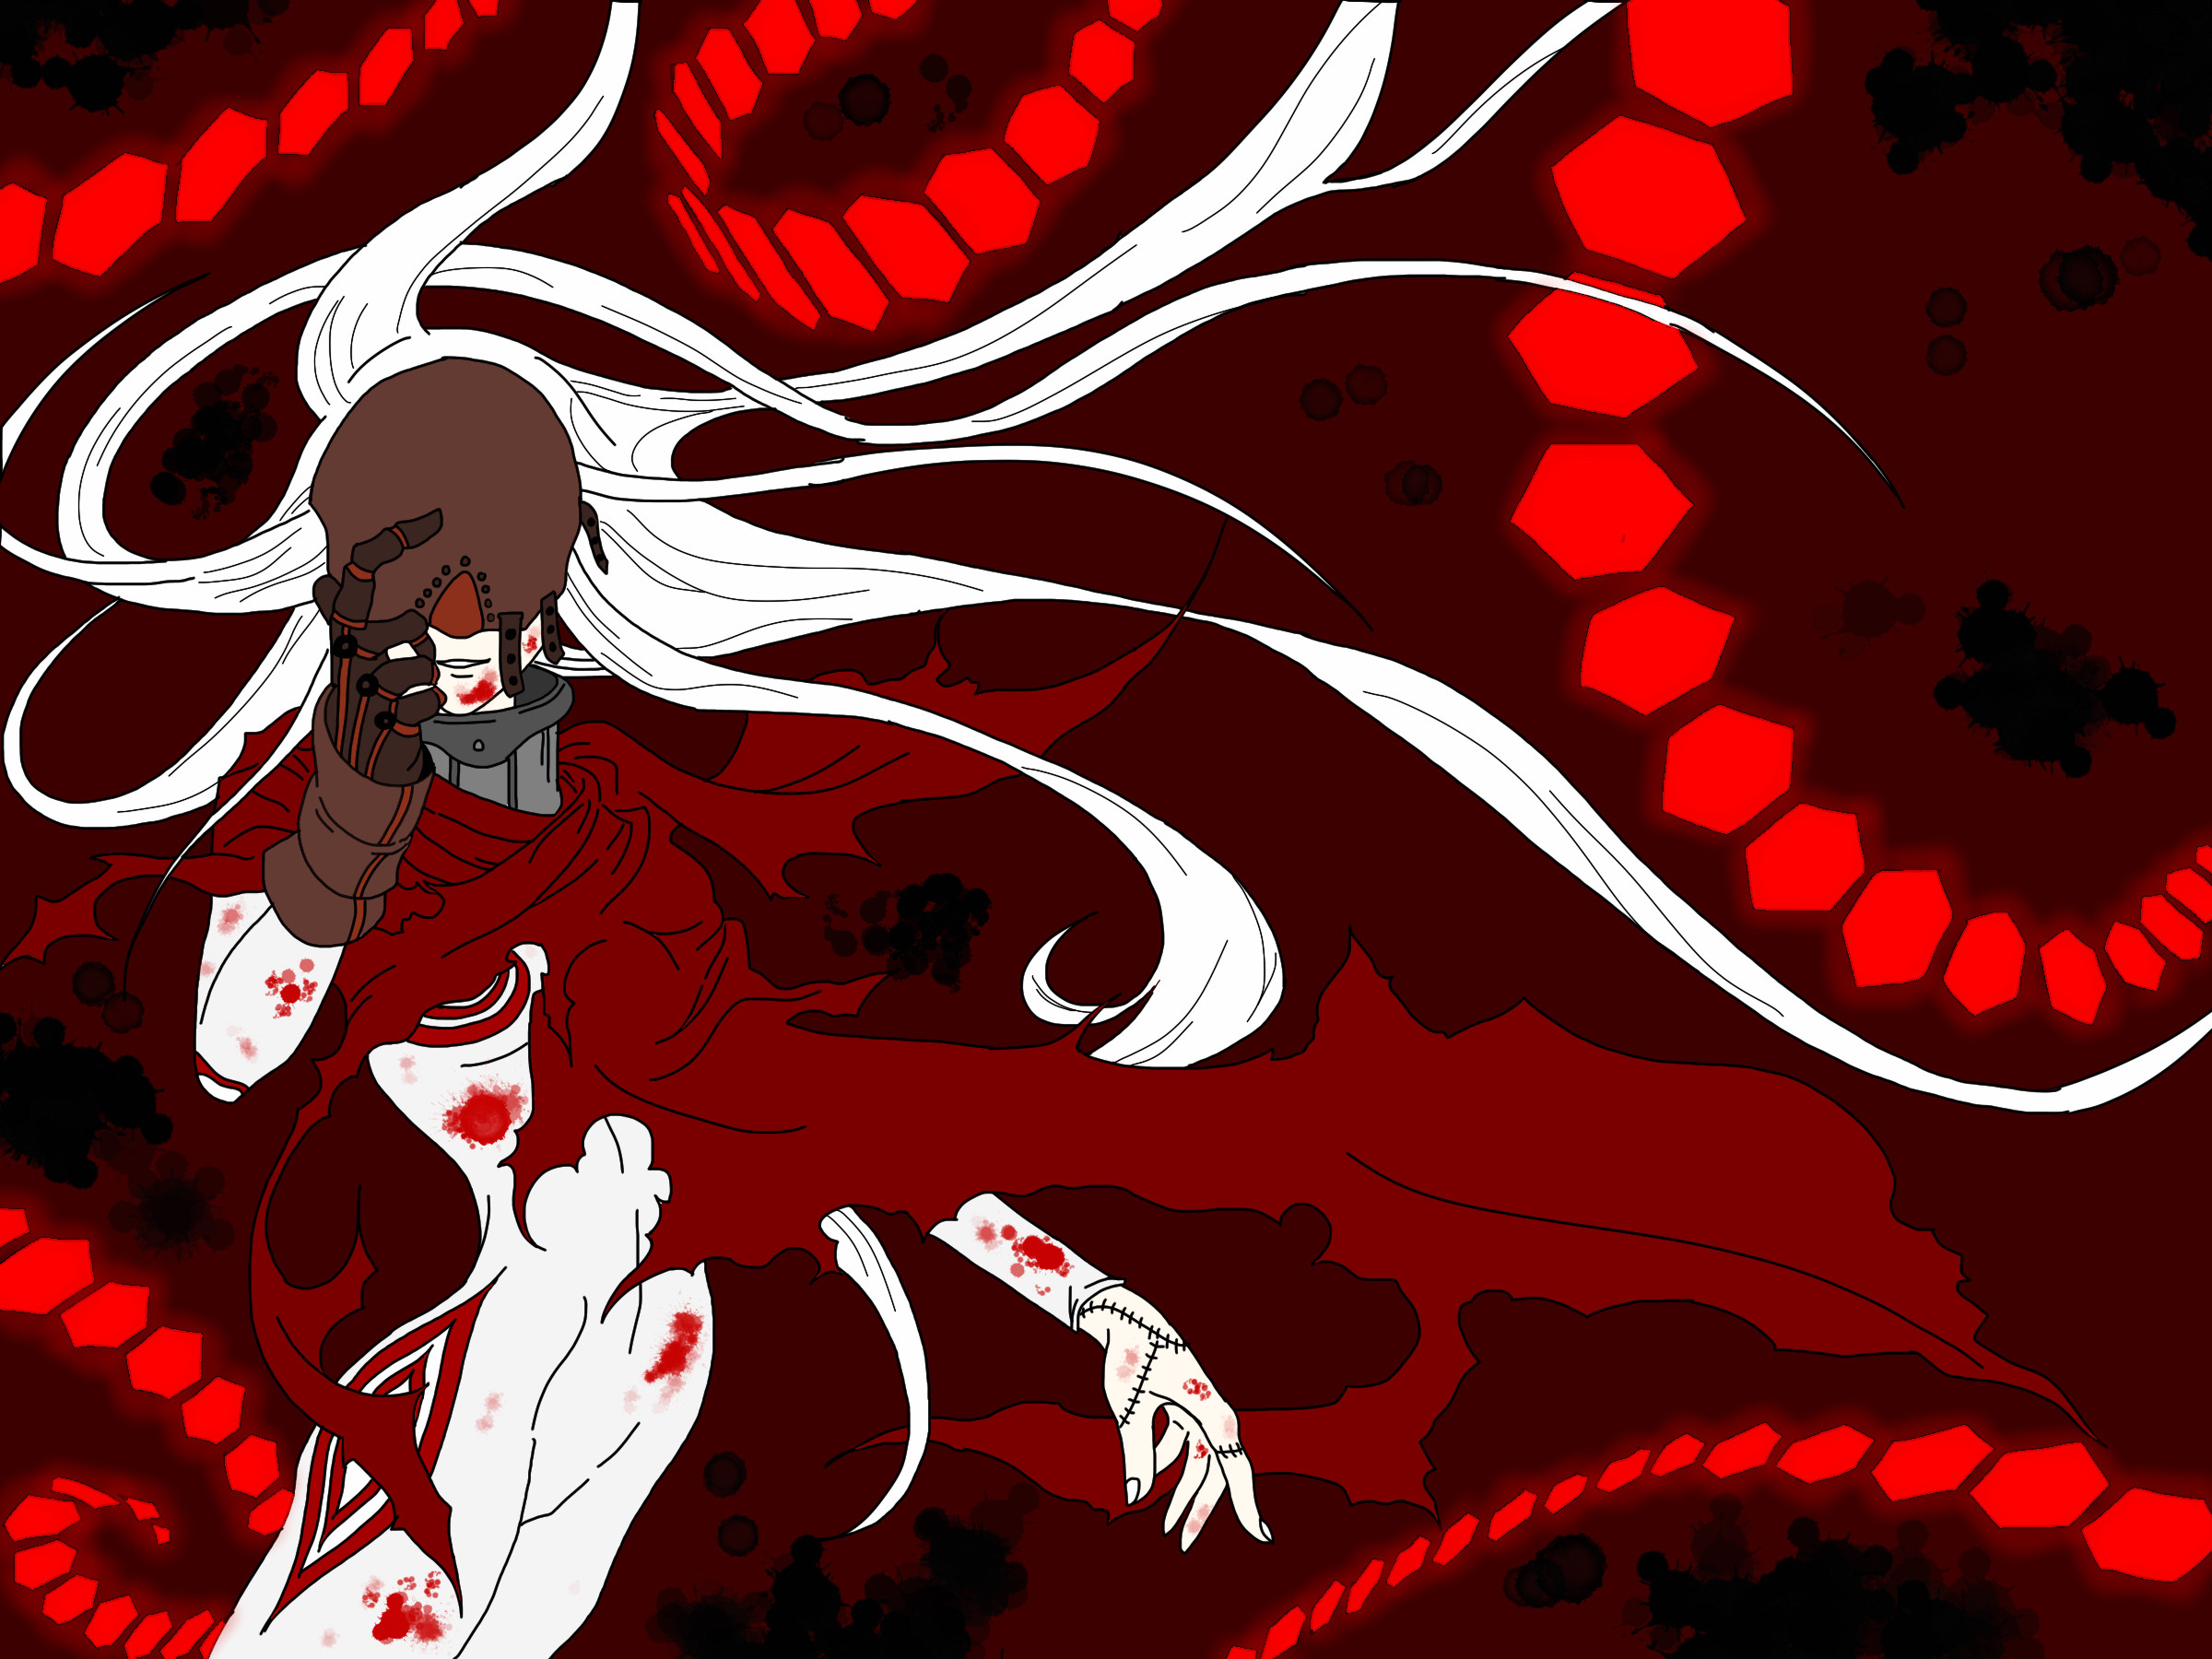 2400x1800 Deadman Wonderland, Wallpaper | page 2 - Zerochan Anime Image Board